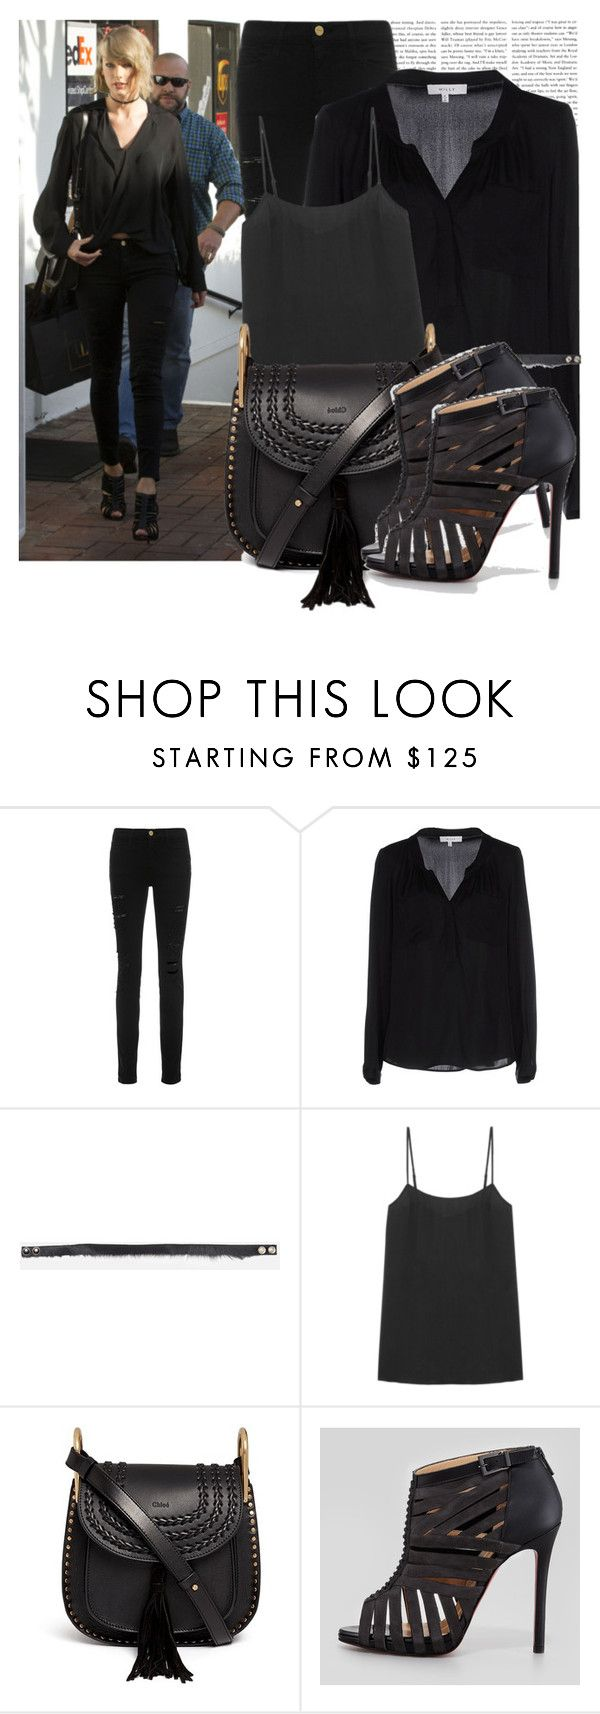 """""""Dress like Taylor Swift"""" by megi32 ❤ liked on Polyvore featuring Frame Denim, Milly, Equipment, Chloé and Christian Louboutin"""